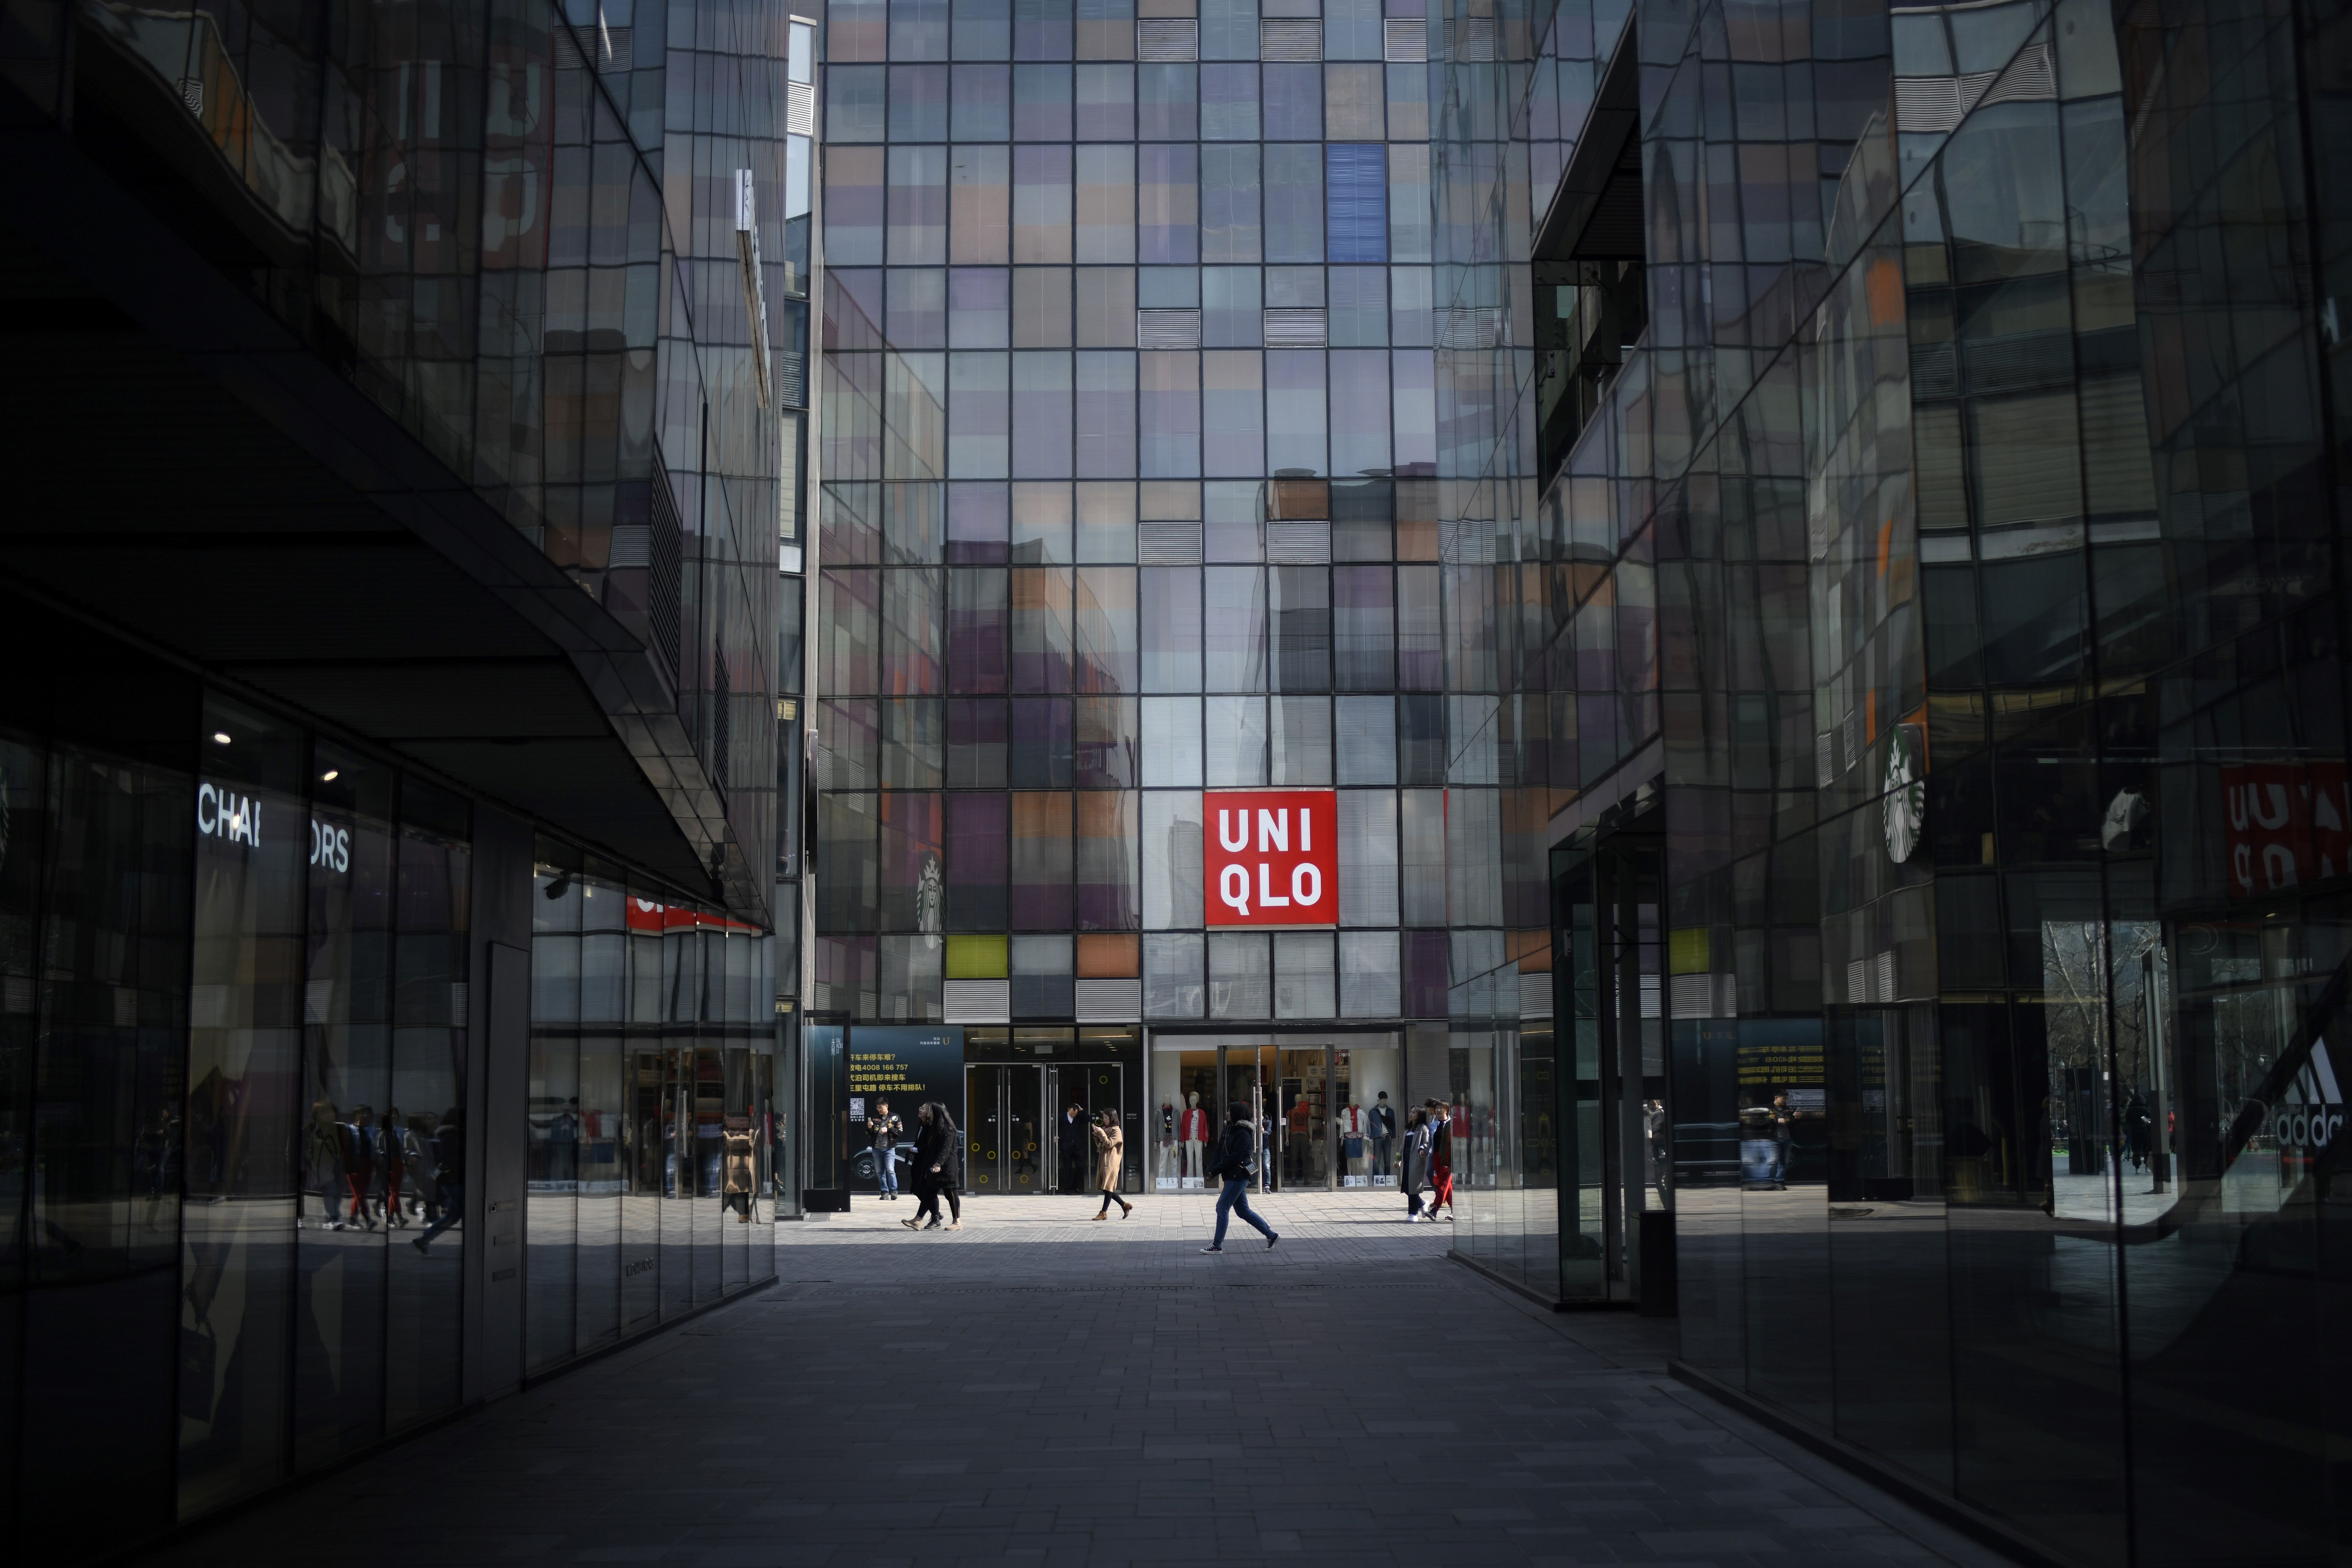 A Uniqlo store in Beijing on February 28, 2019.